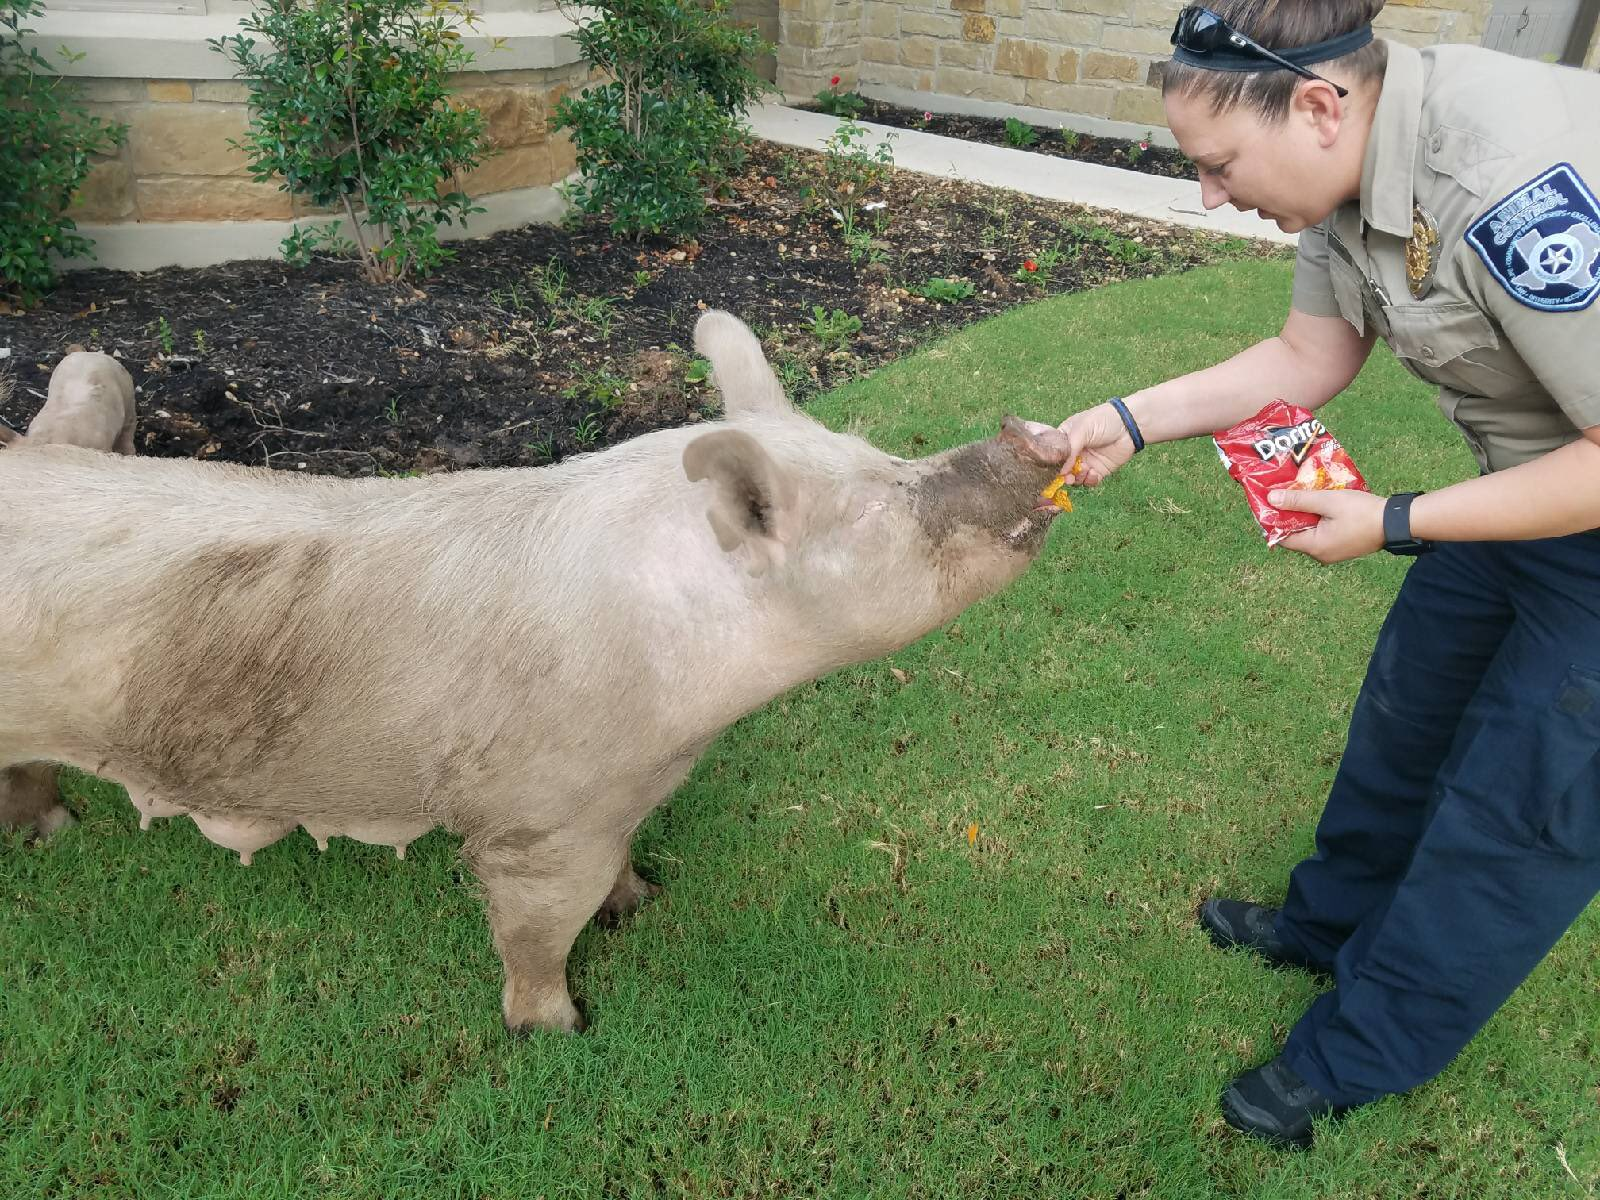 Escaped pigs in Cedar Park were lured out of a backyard using bags of chips. (Photos courtesy: Cedar Park Police)